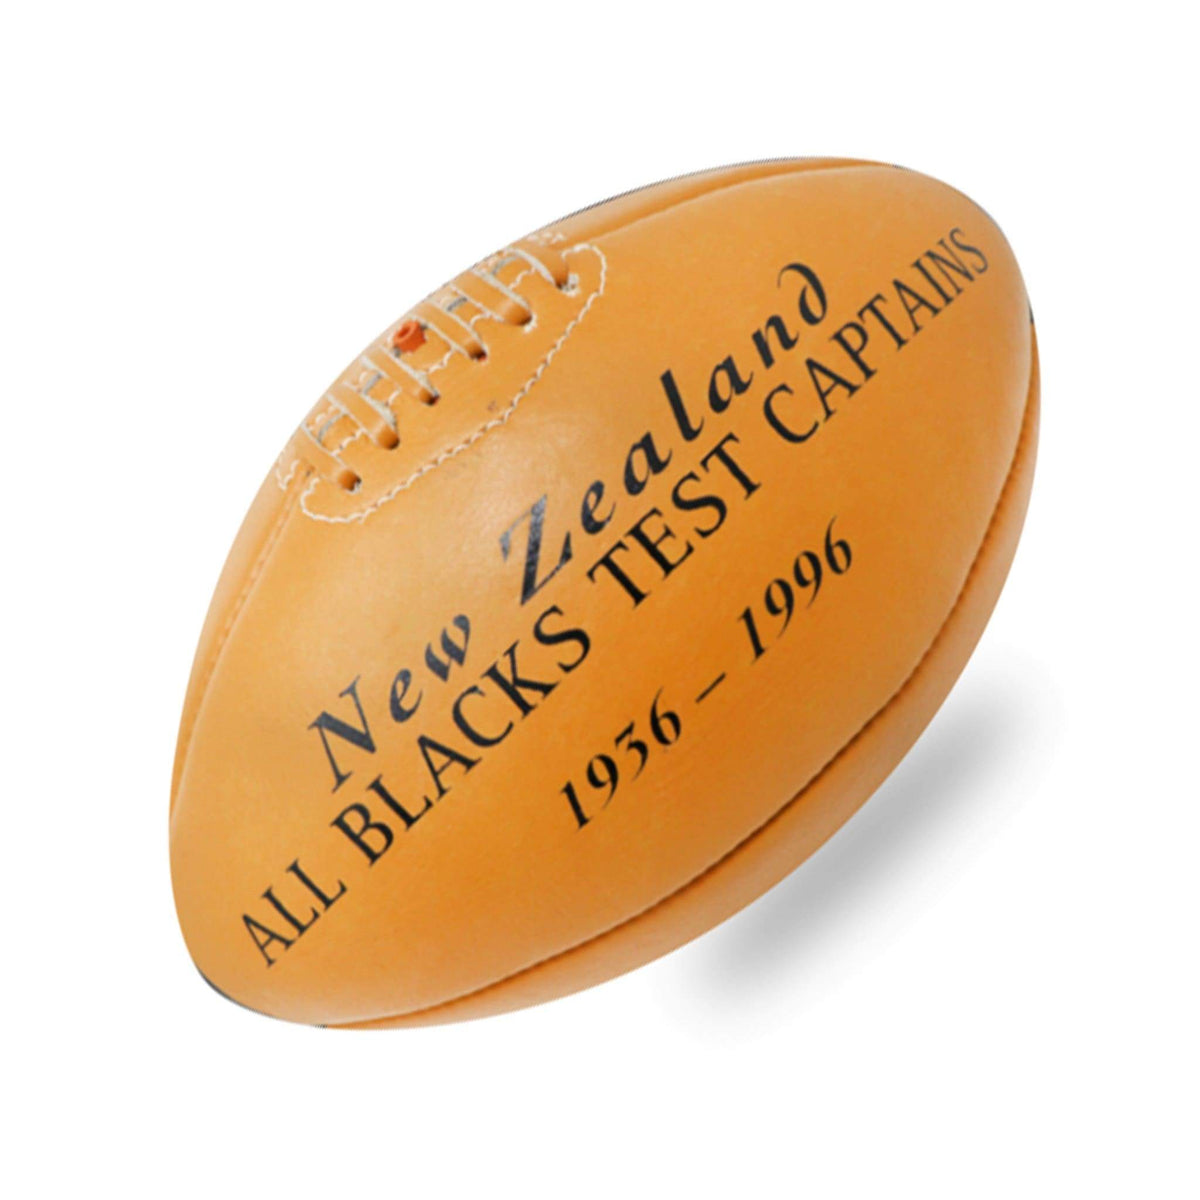 Vintage All Blacks Rugby Ball Signed By Legendary Test Captains Vintagesports Com